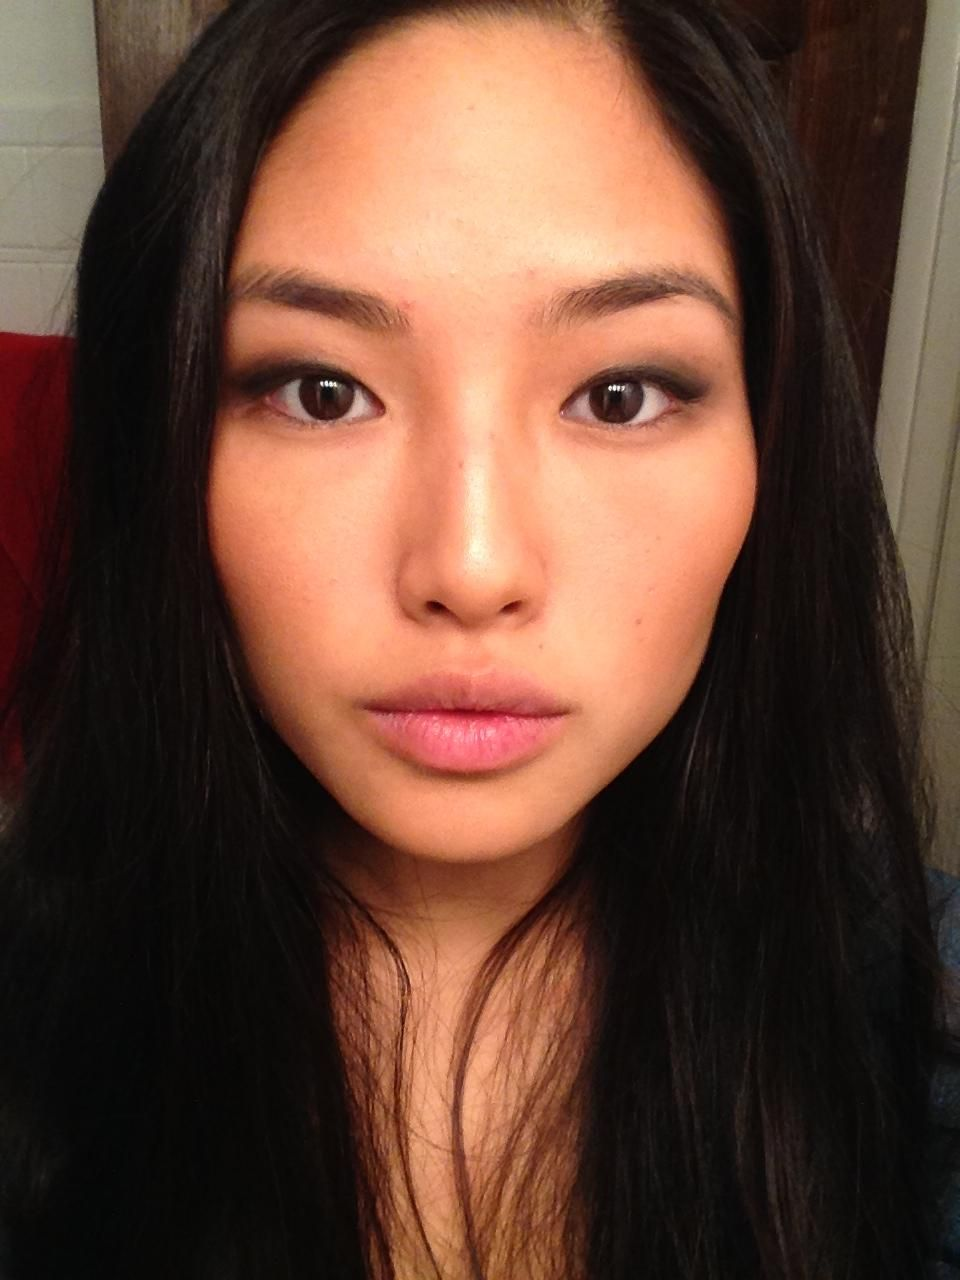 Asian Eyes Kpop And Makeup: First Successful Attempt With Eyeshadow As A Monolider And